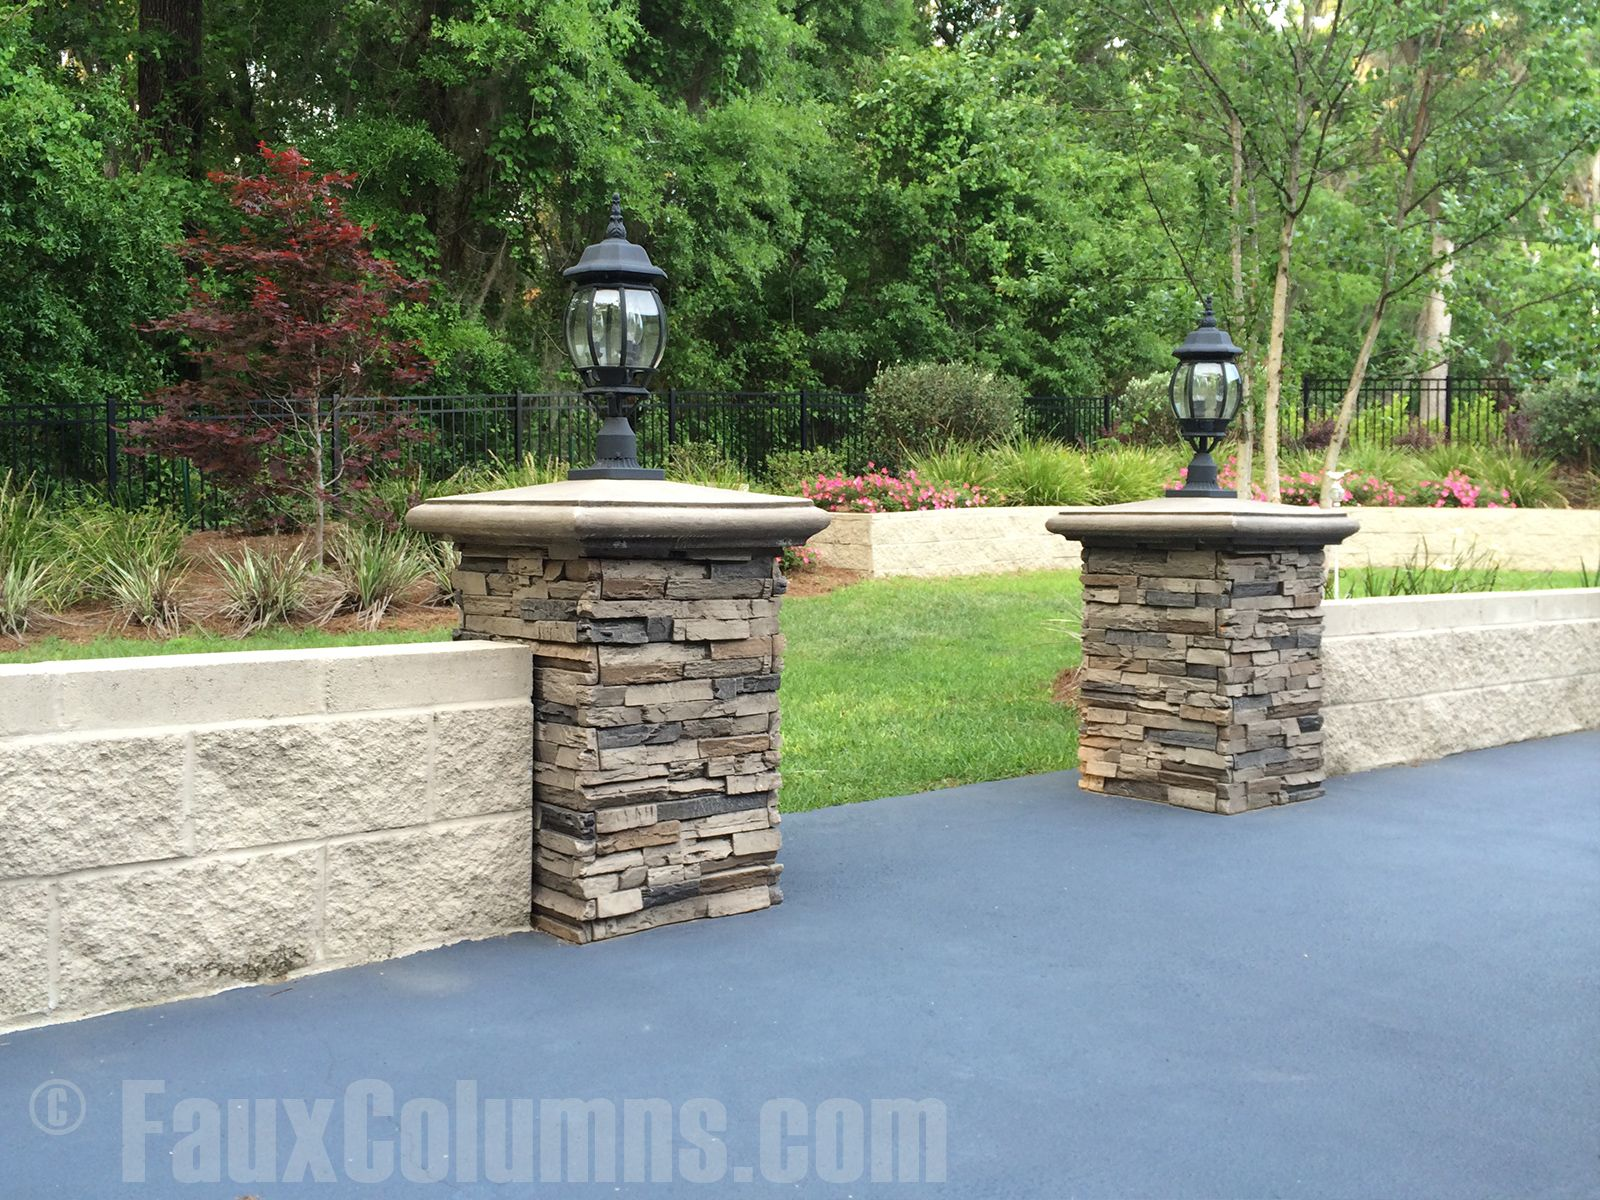 Decorative Column Ideas | Imitation Stone Photo Gallery ... on Fancy Outdoor Living id=27174